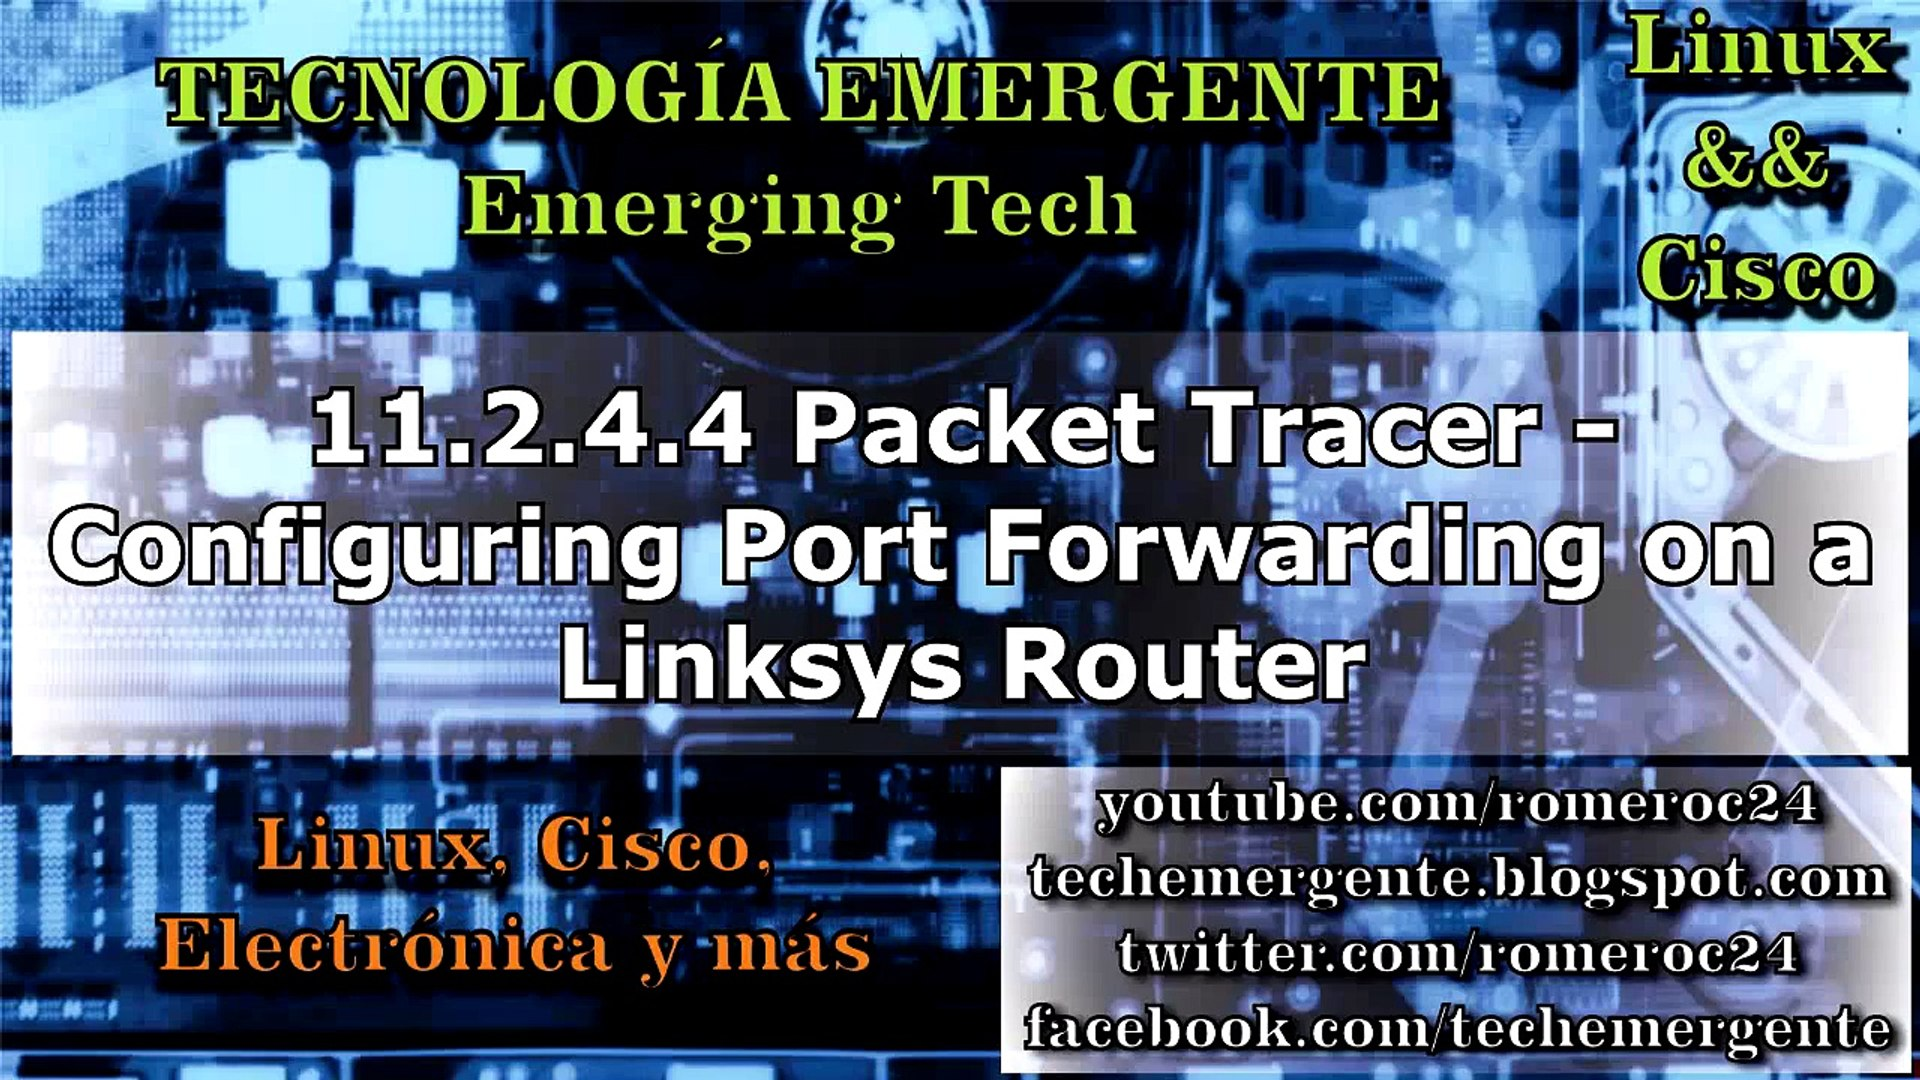 9 2 4 4 - 11 2 4 4 Packet Tracer - Configuring Port Forwarding on a Linksys  Router